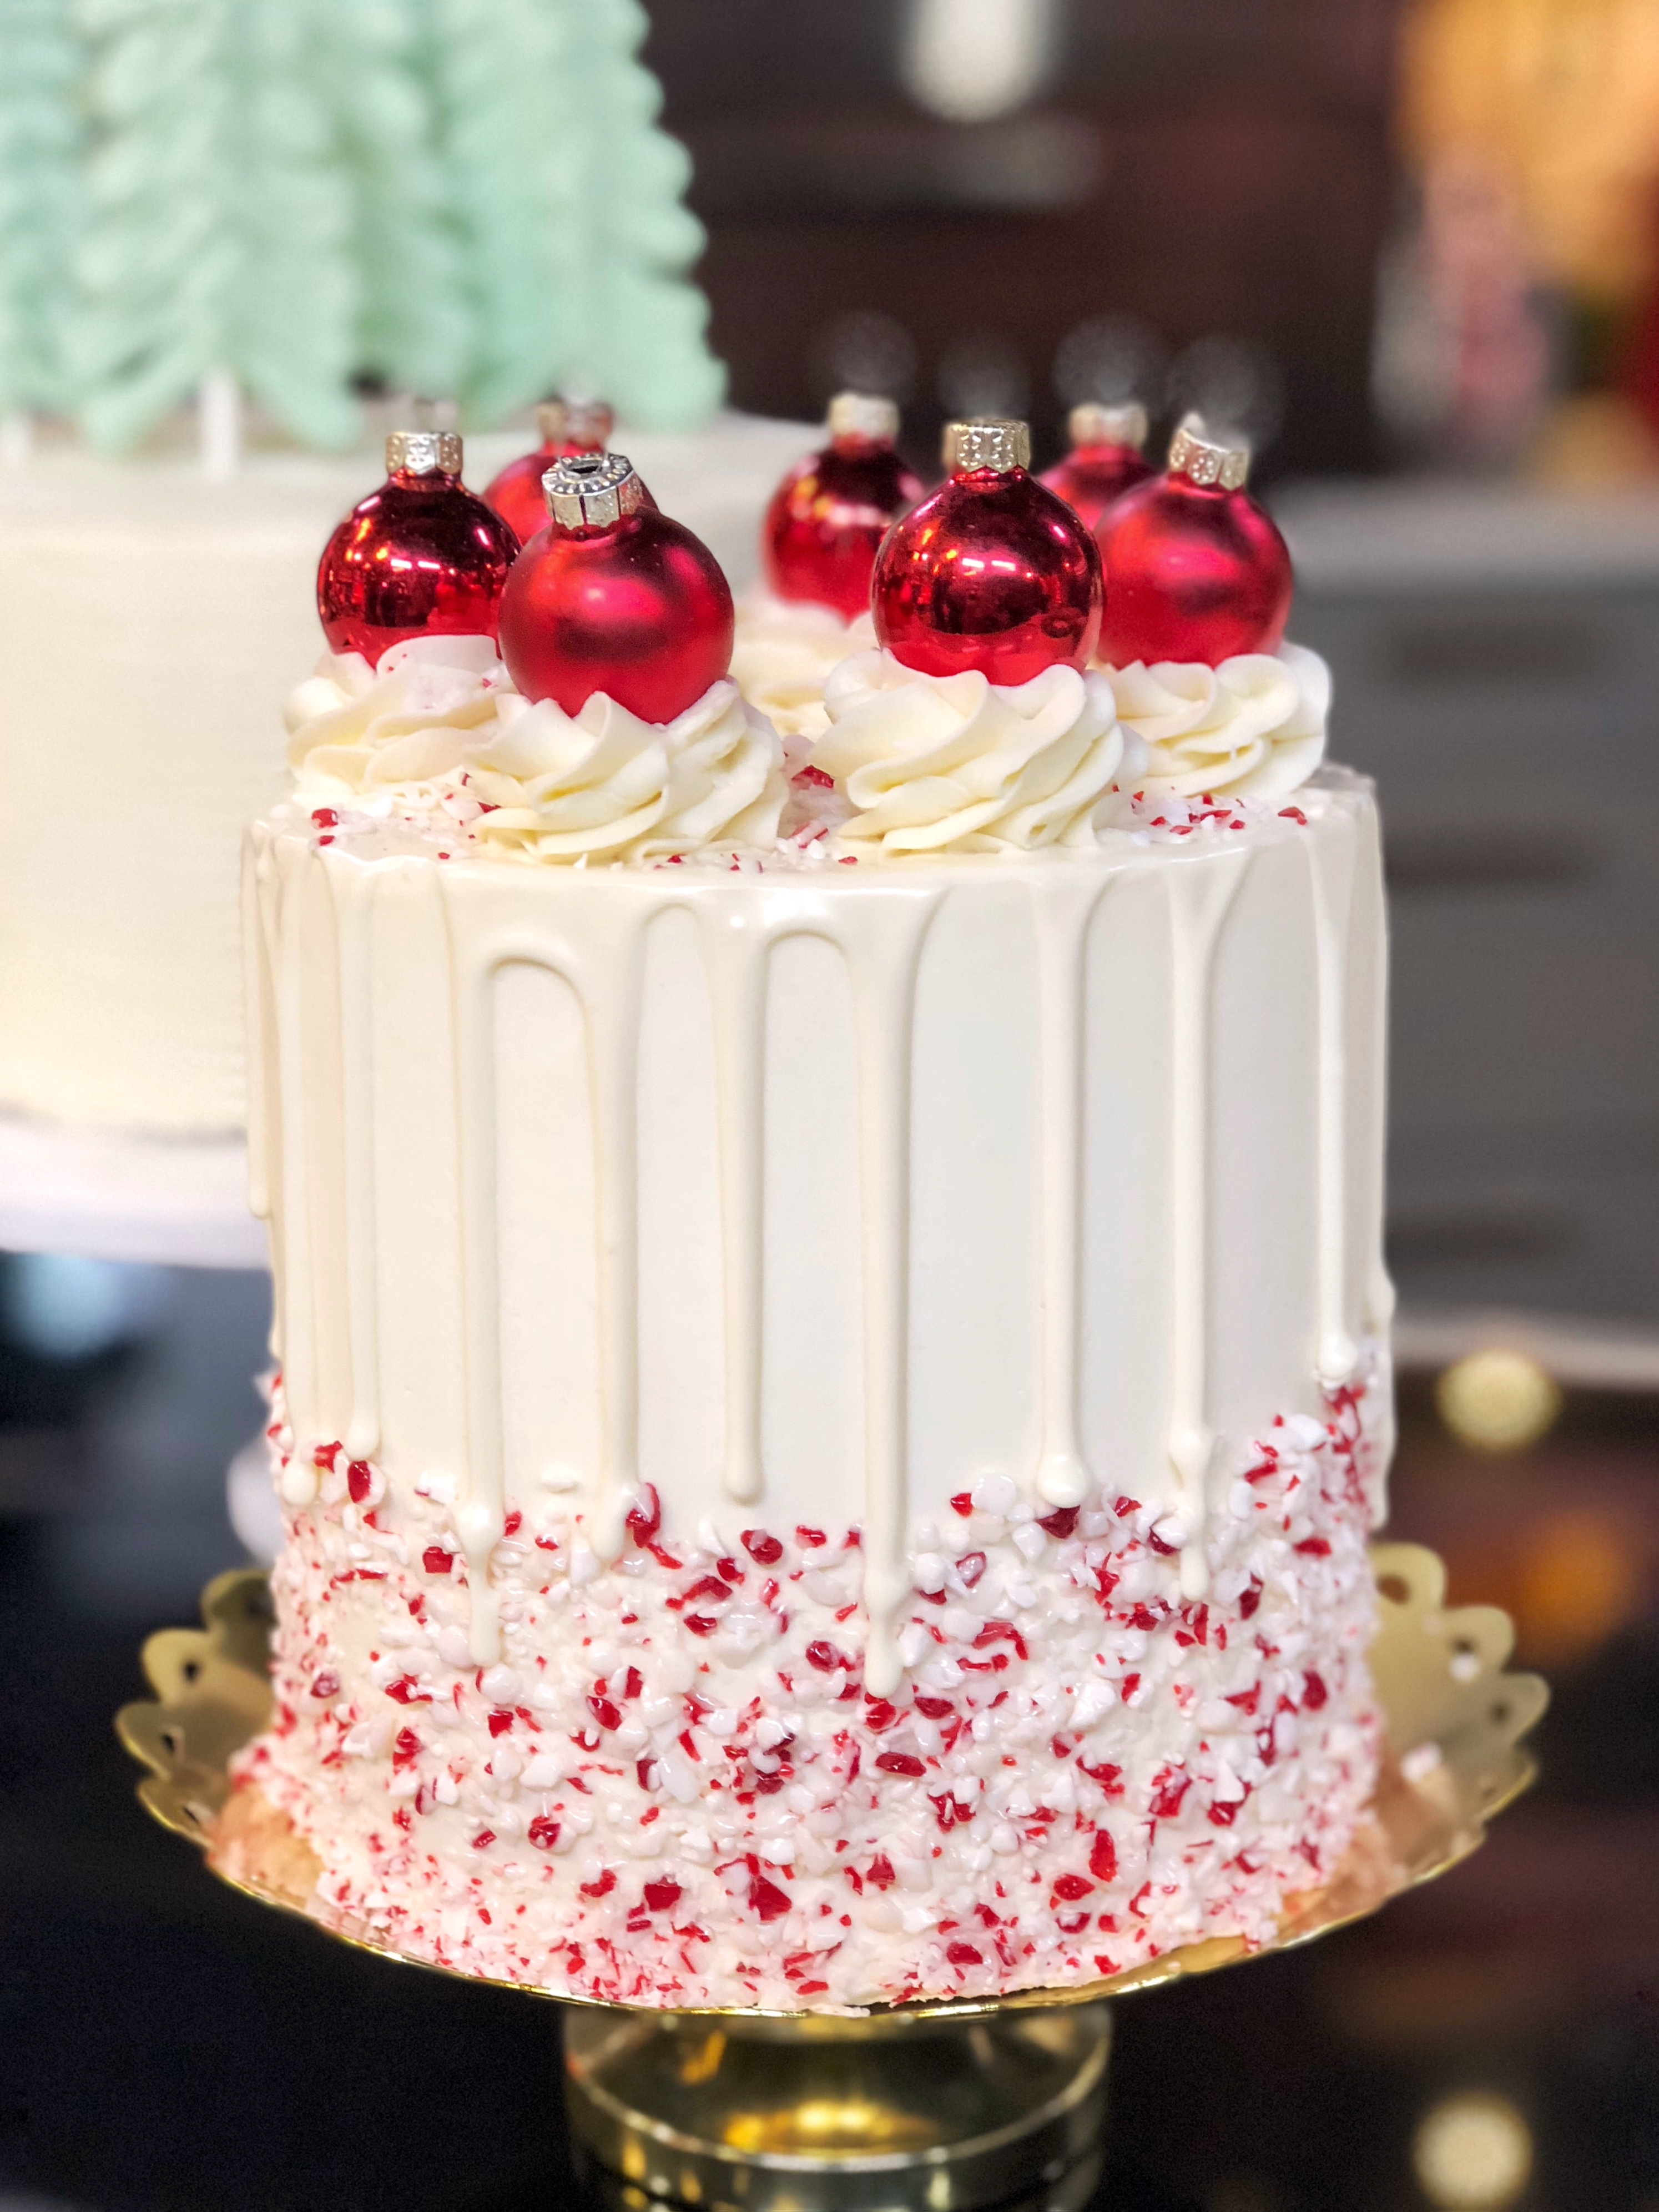 Simple and Cute Christmas Cake Decorating Ideas This cake is so delicious and with some crushed peppermint candies and mini  red ornaments  it s a breeze to decorate